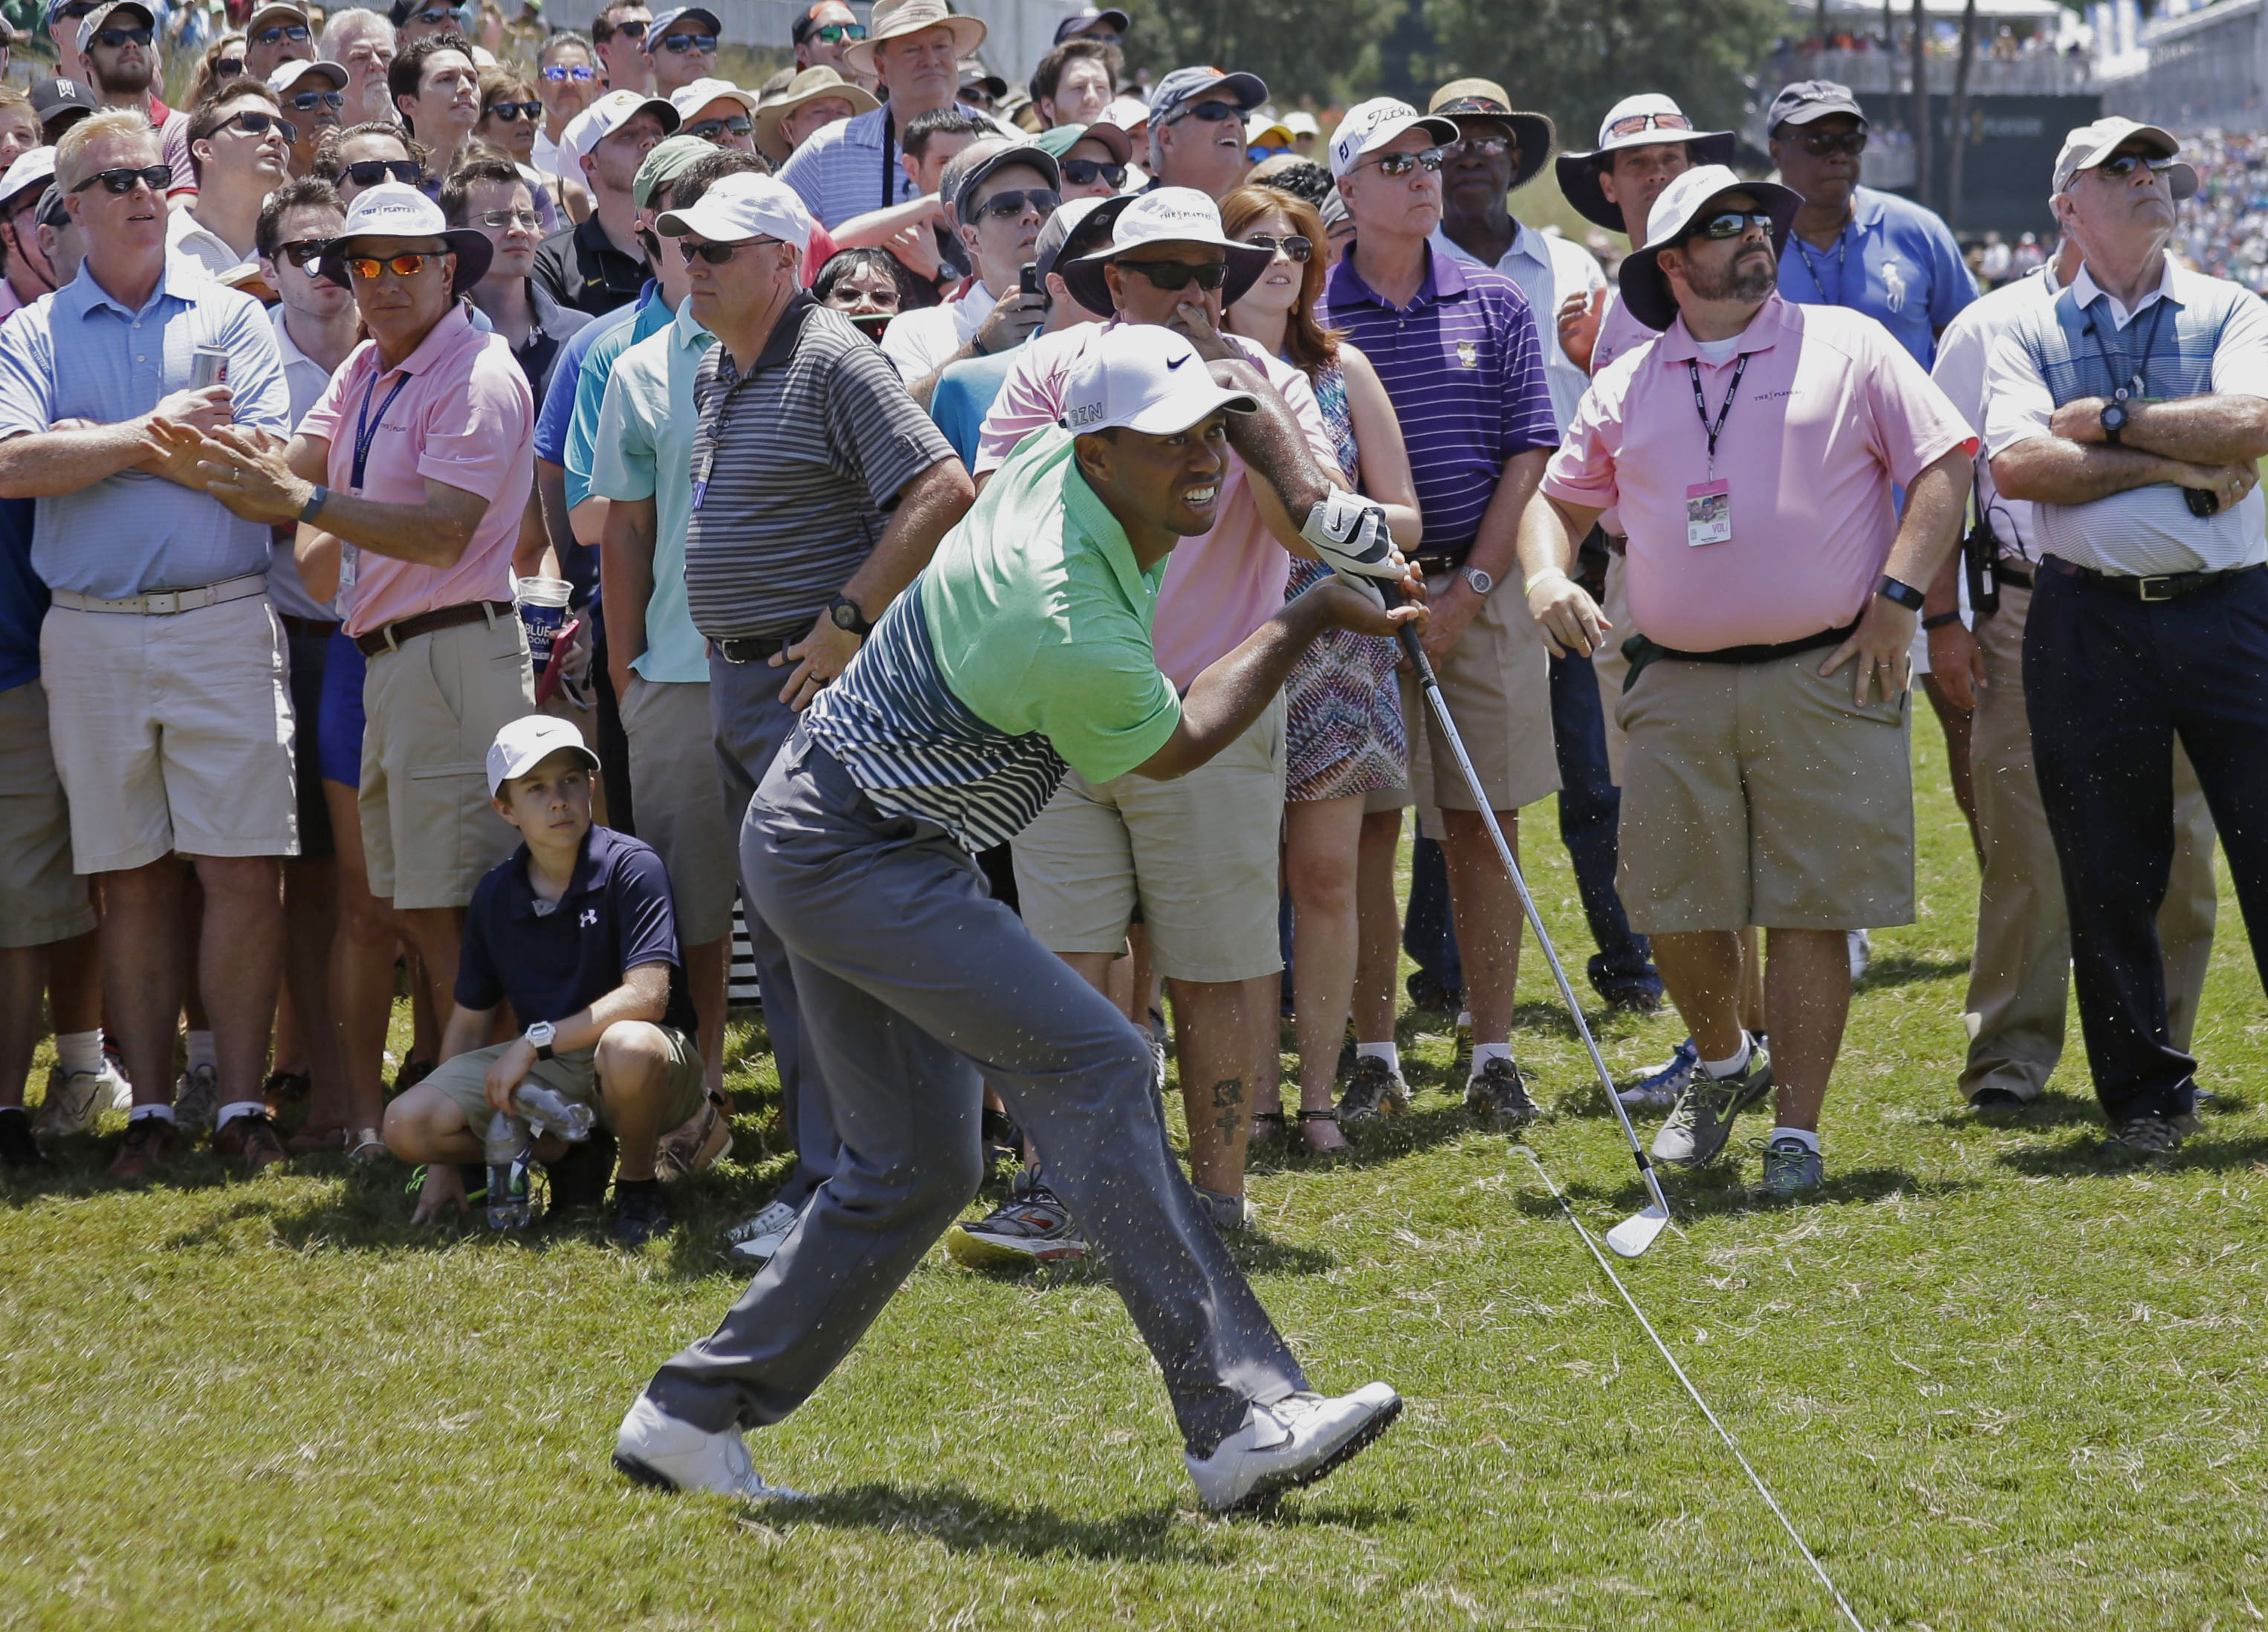 Tiger Woods follows his shot from the rough on the 18th fairway during the third round of The Players Championship golf tournament Saturday, May 9, 2015, in Ponte Vedra Beach, Fla. (AP Photo/John Raoux)